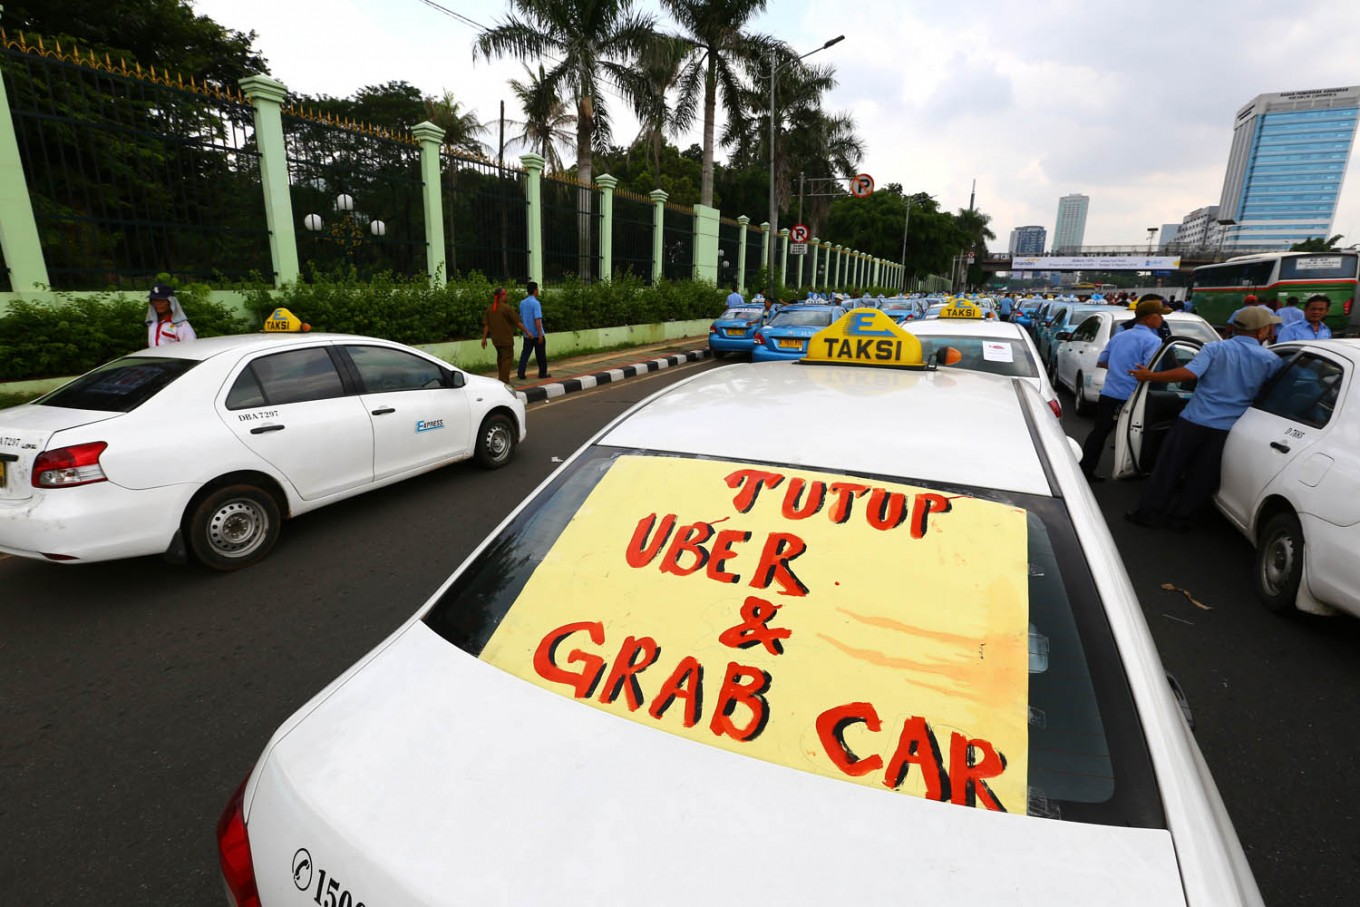 Jakarta administration threatens to revoke permits of companies whose cabbies were involved in violence